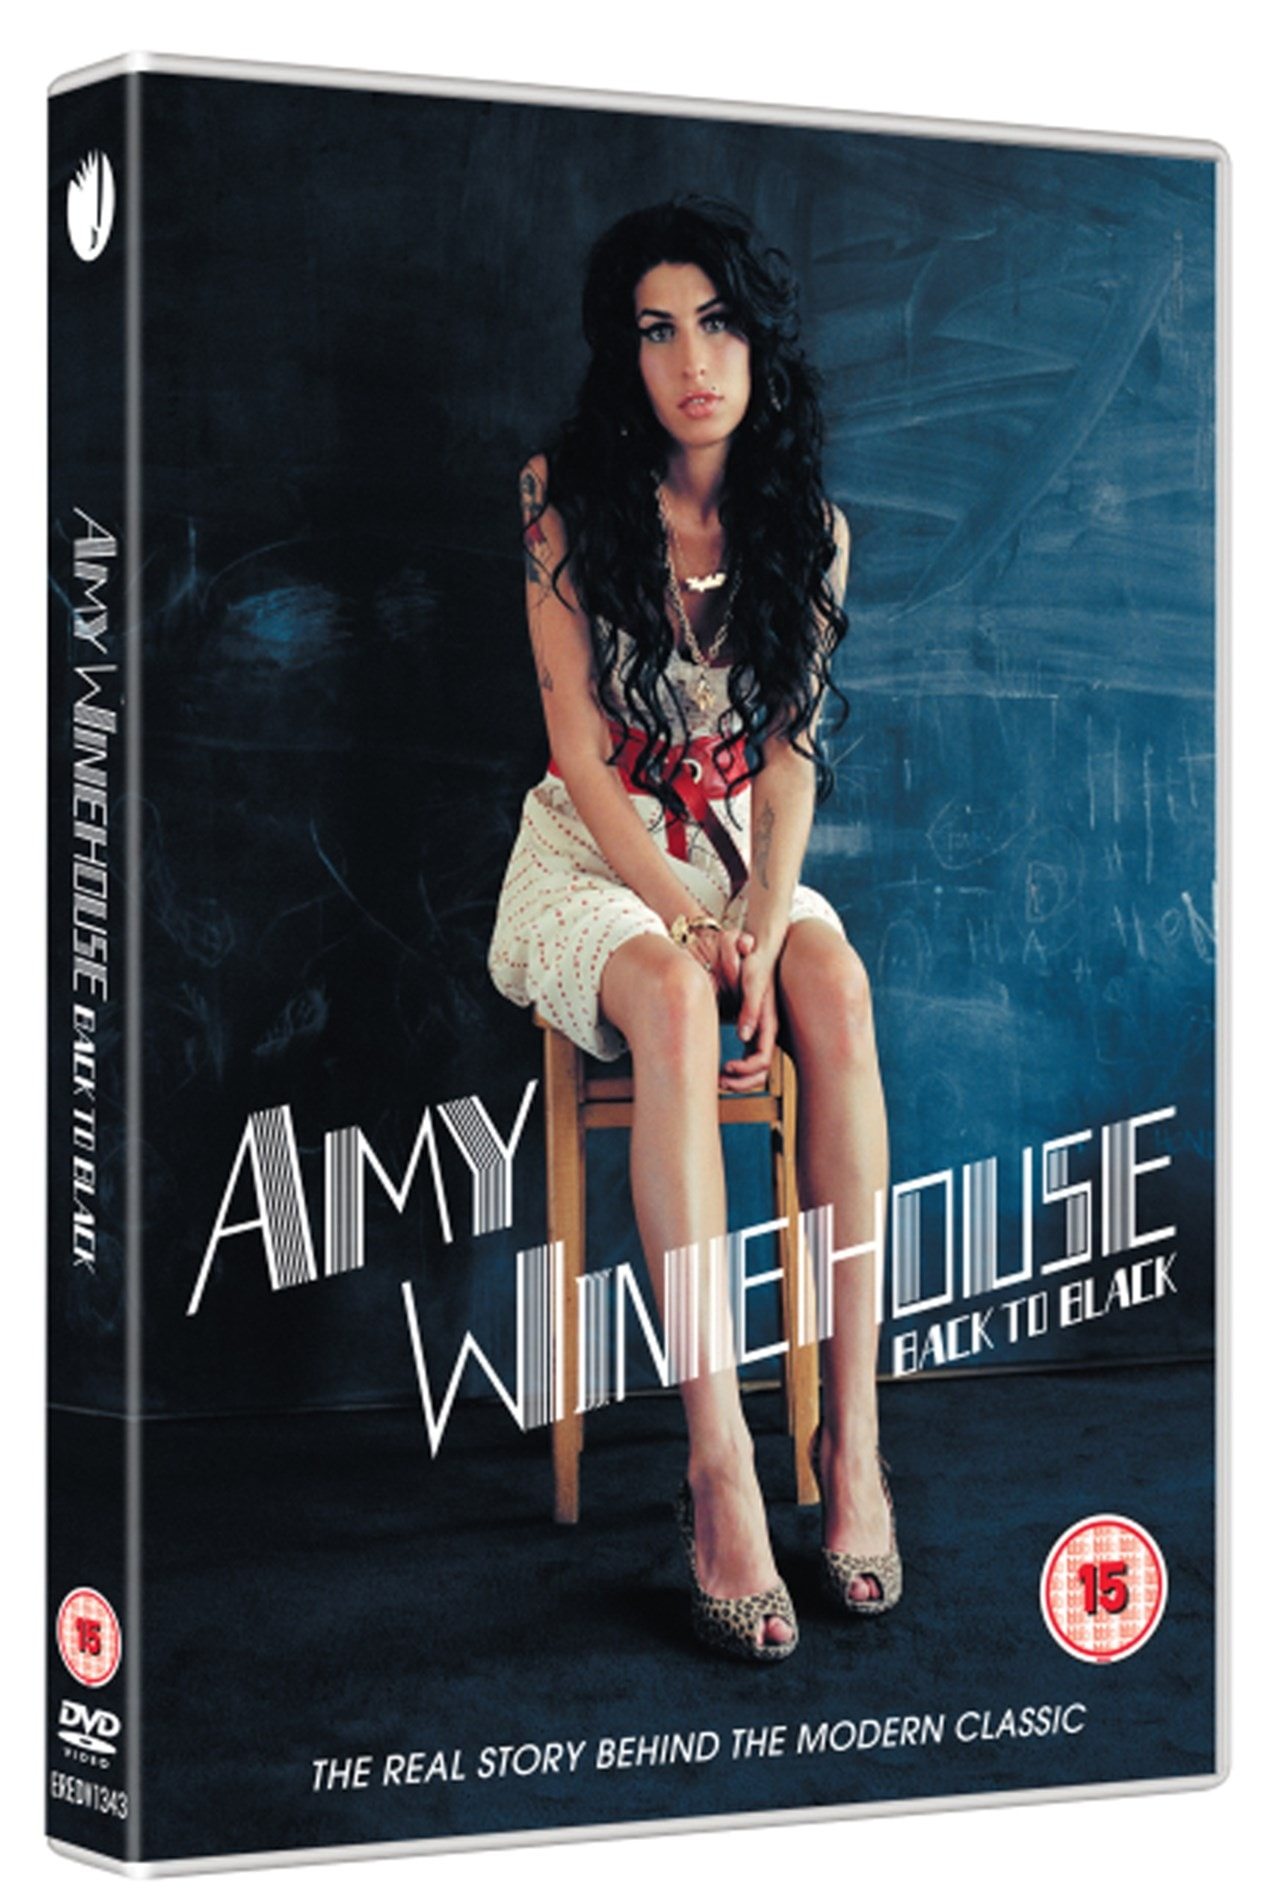 Amy Winehouse: Back to Black - The Real Story Behind... - 1